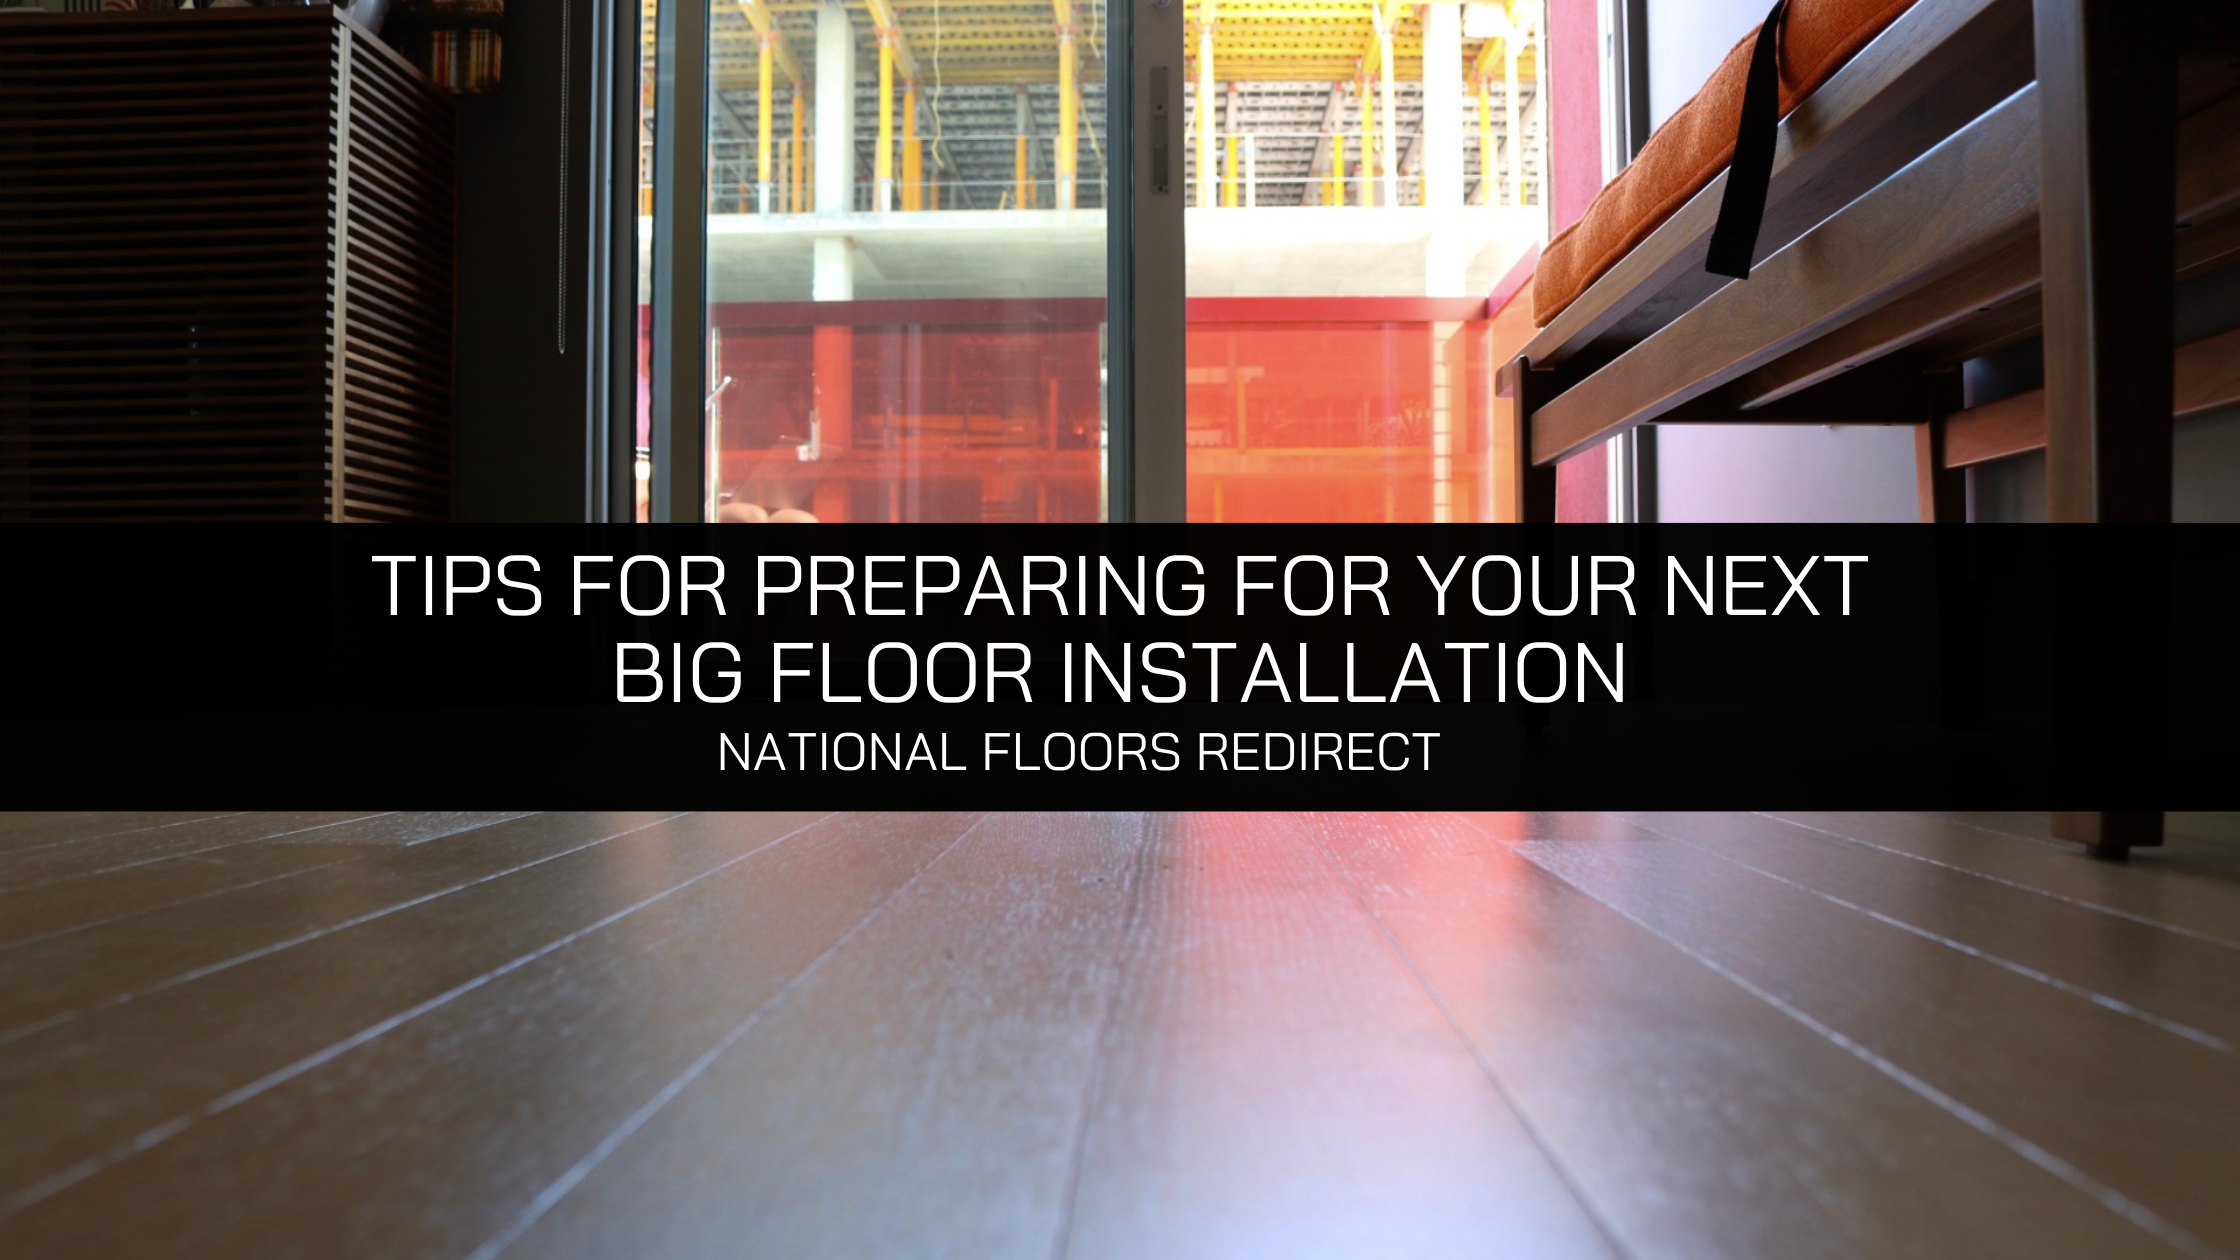 National Floors Redirect Offers Tips for Preparing for Your Next Big Floor Installation